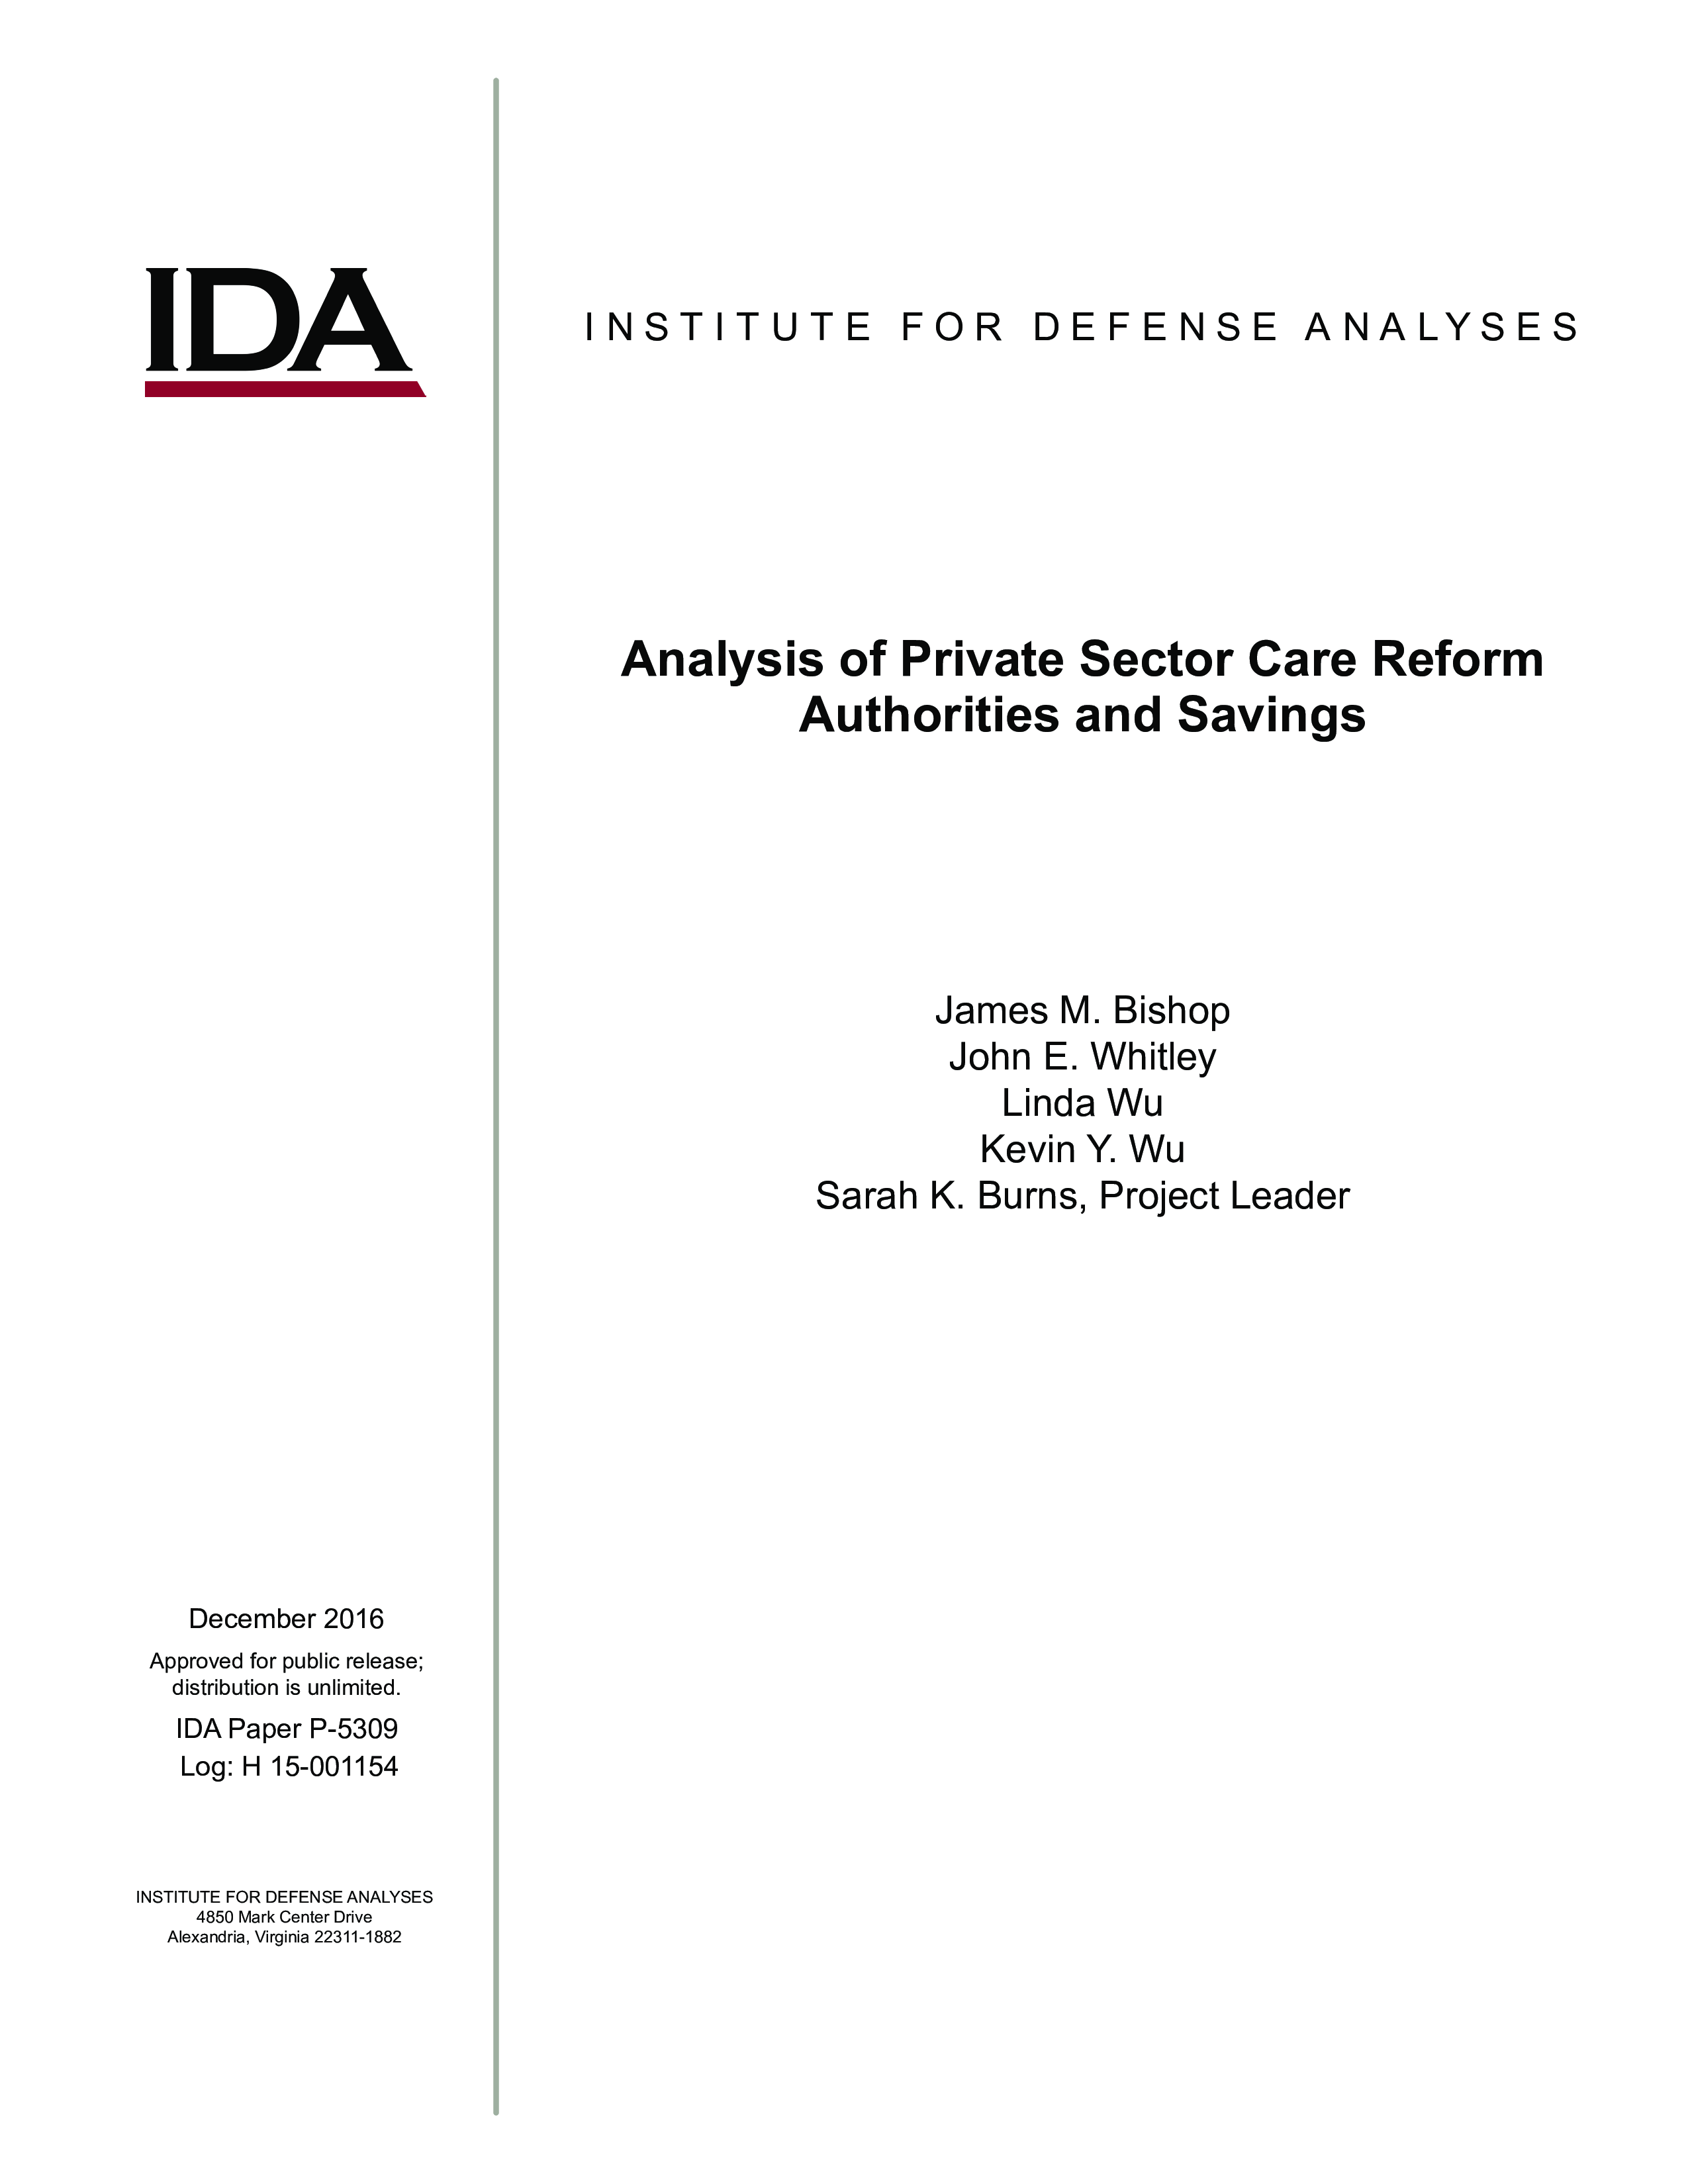 Analysis of Private Sector Care Reform Authorities and Savings